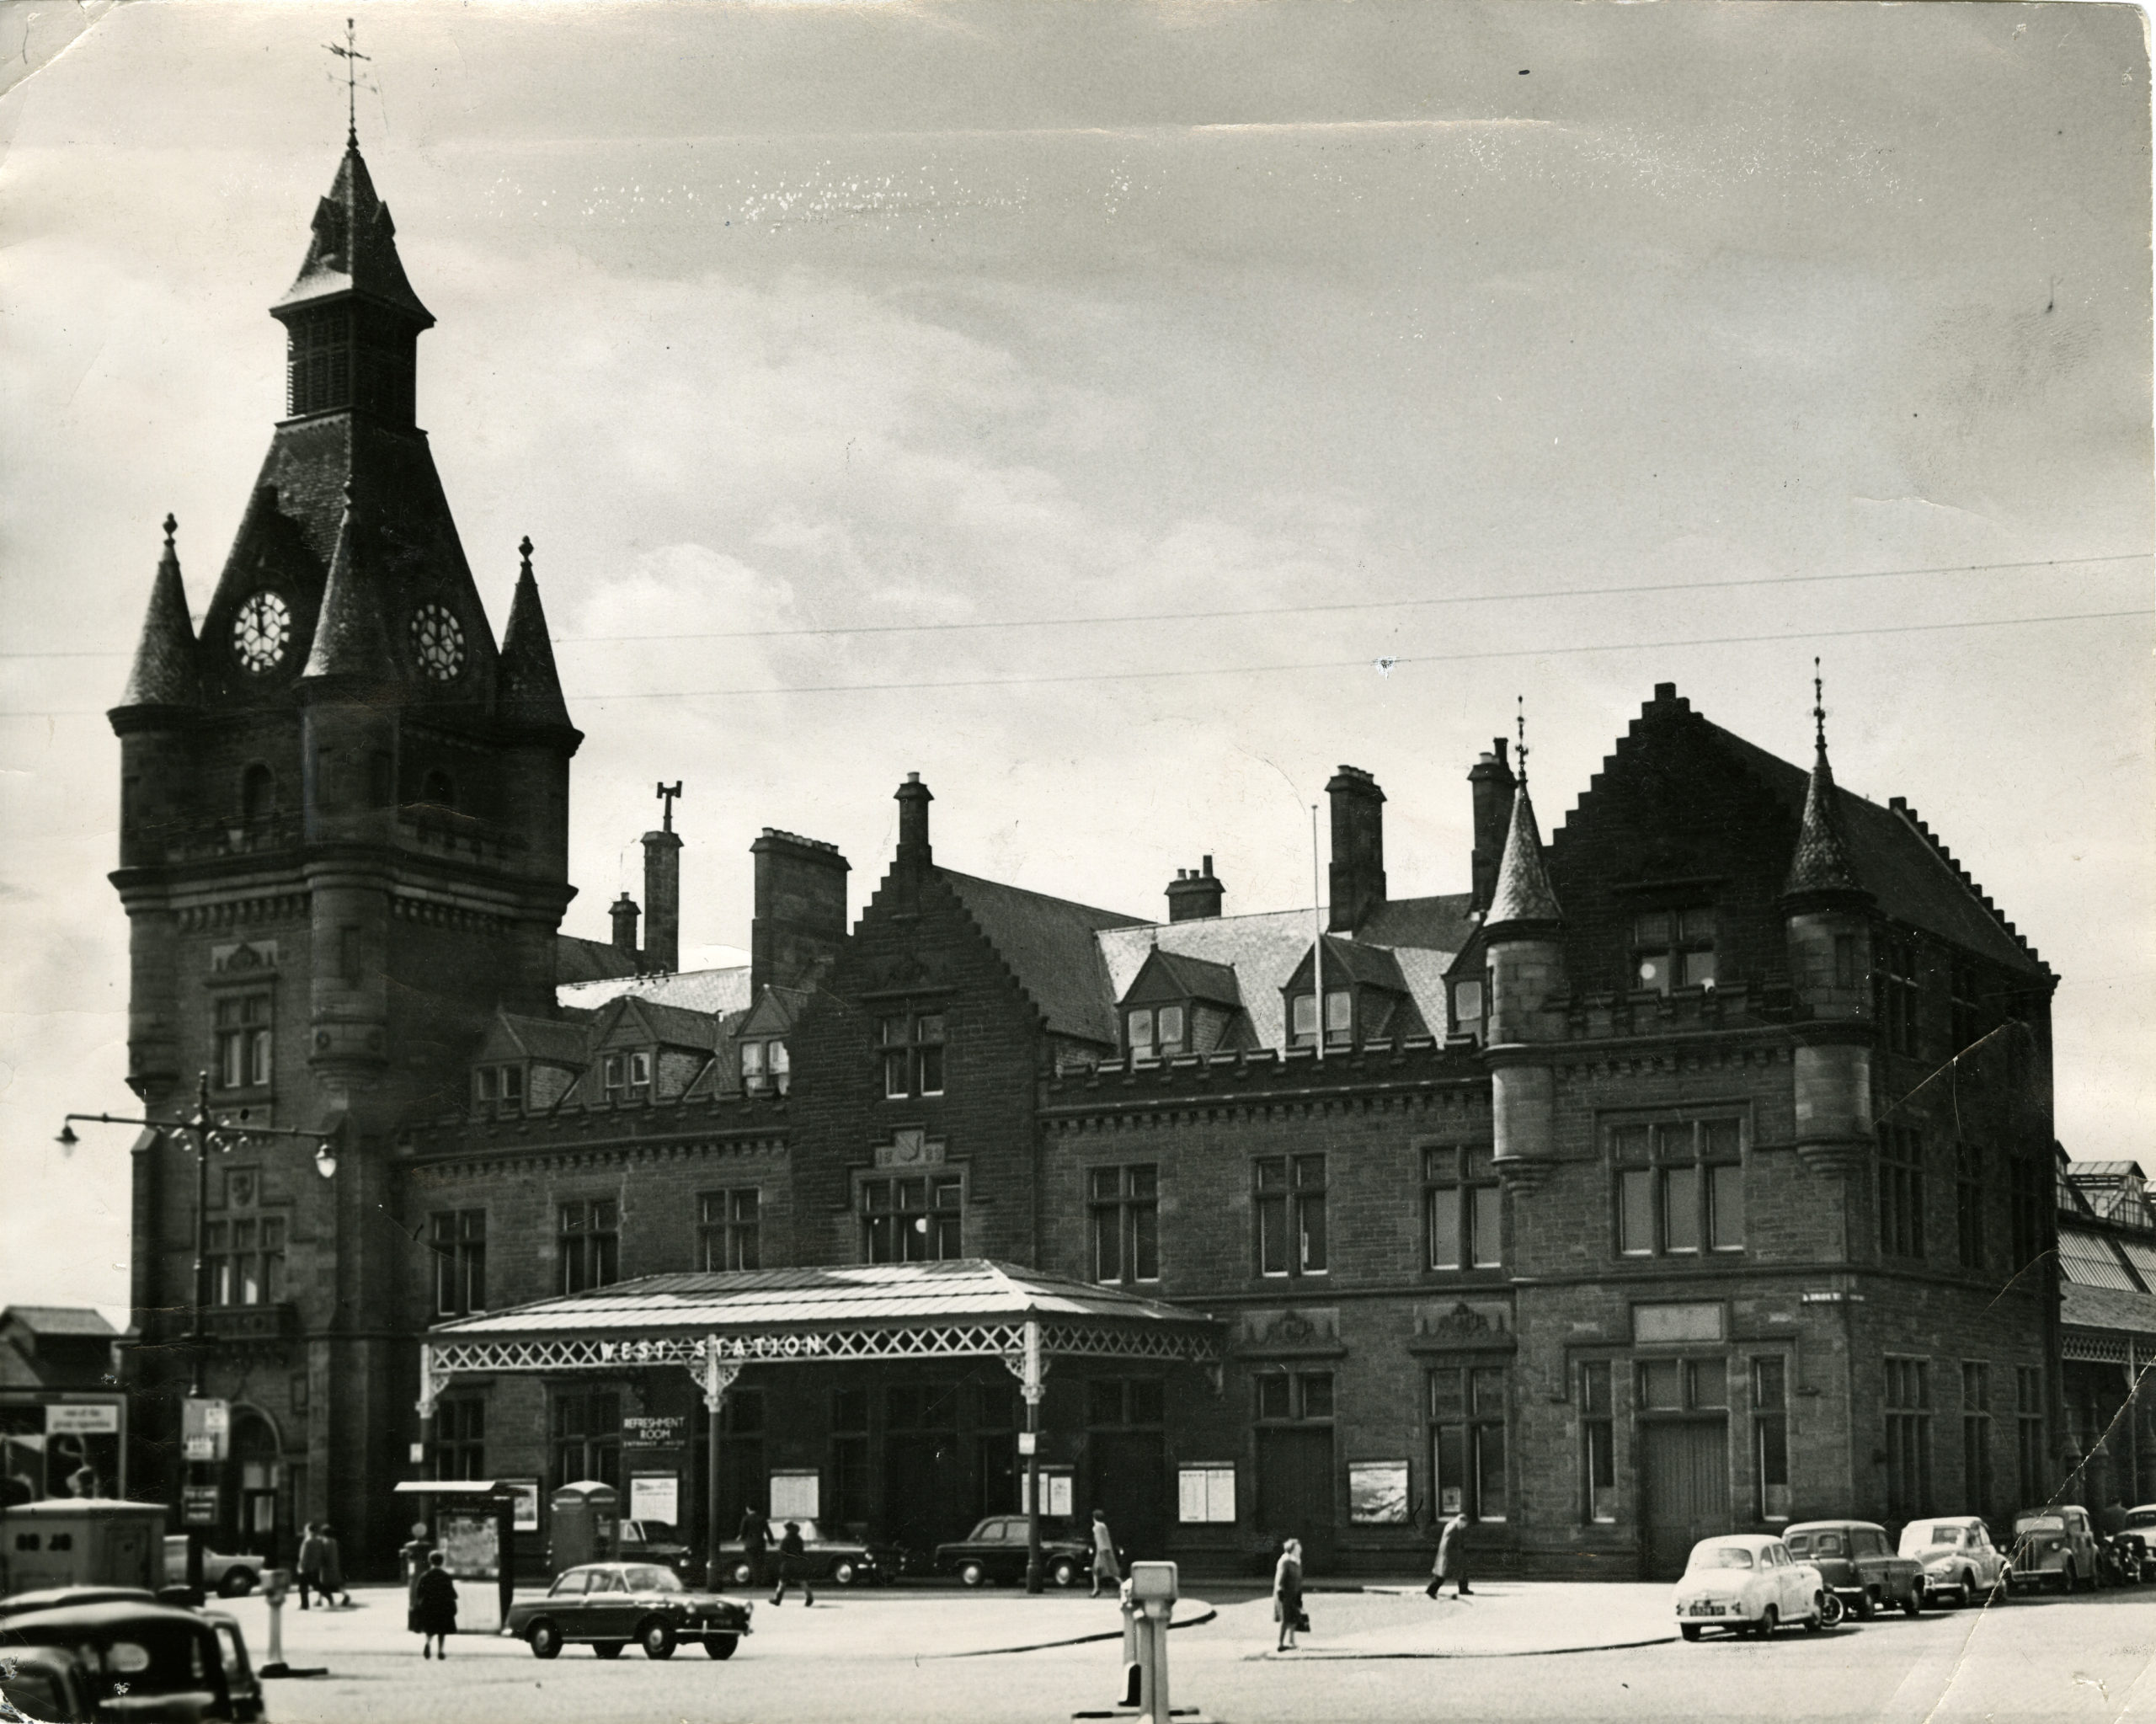 Dundee West Station on May 6, 1965.